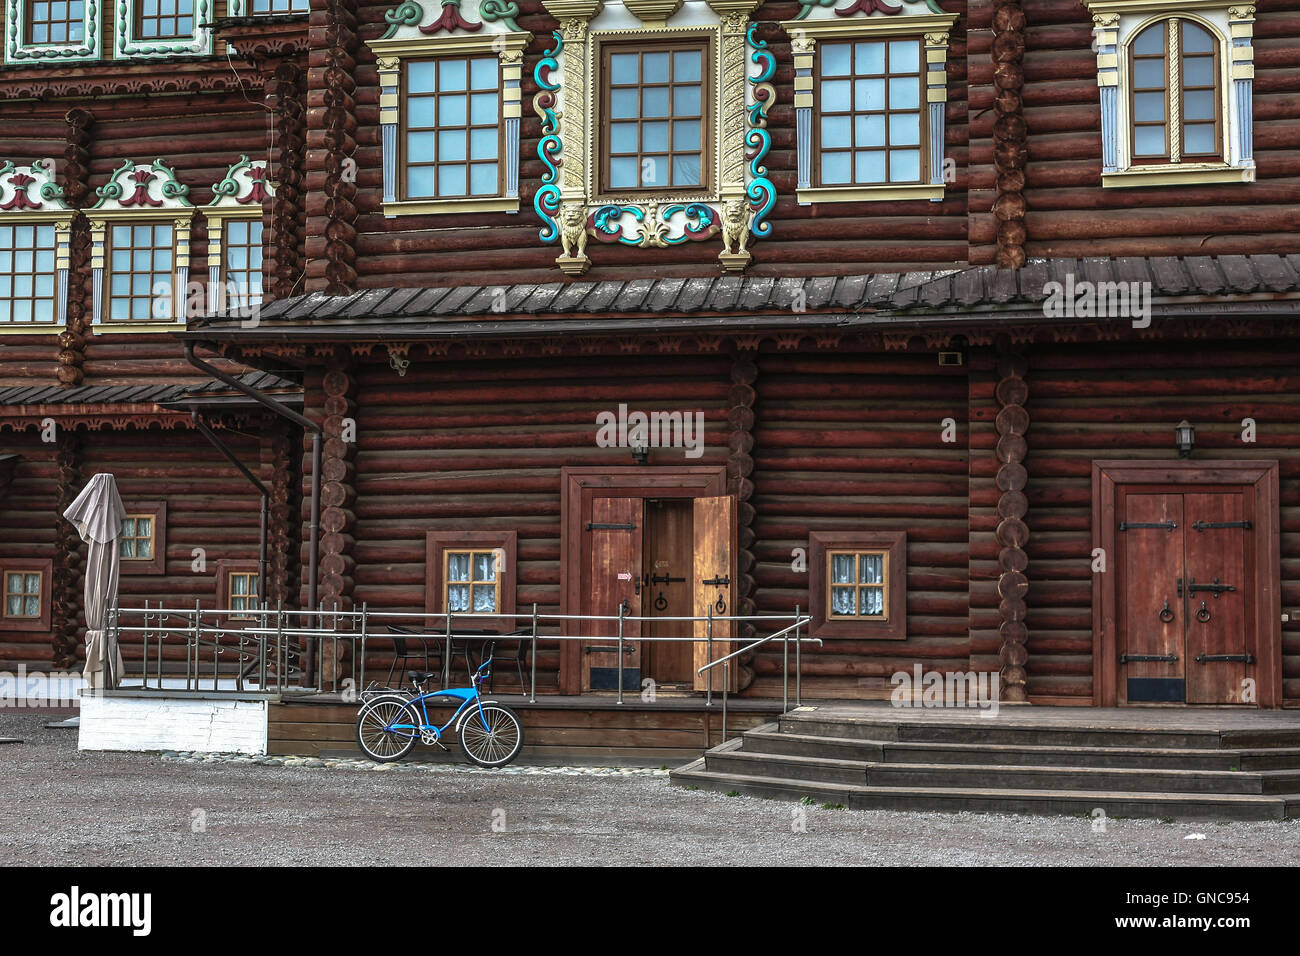 Someone has arrived to the imperial palace of Alexey Romanov in Kolomna in Moscow by bicycle. - Stock Image